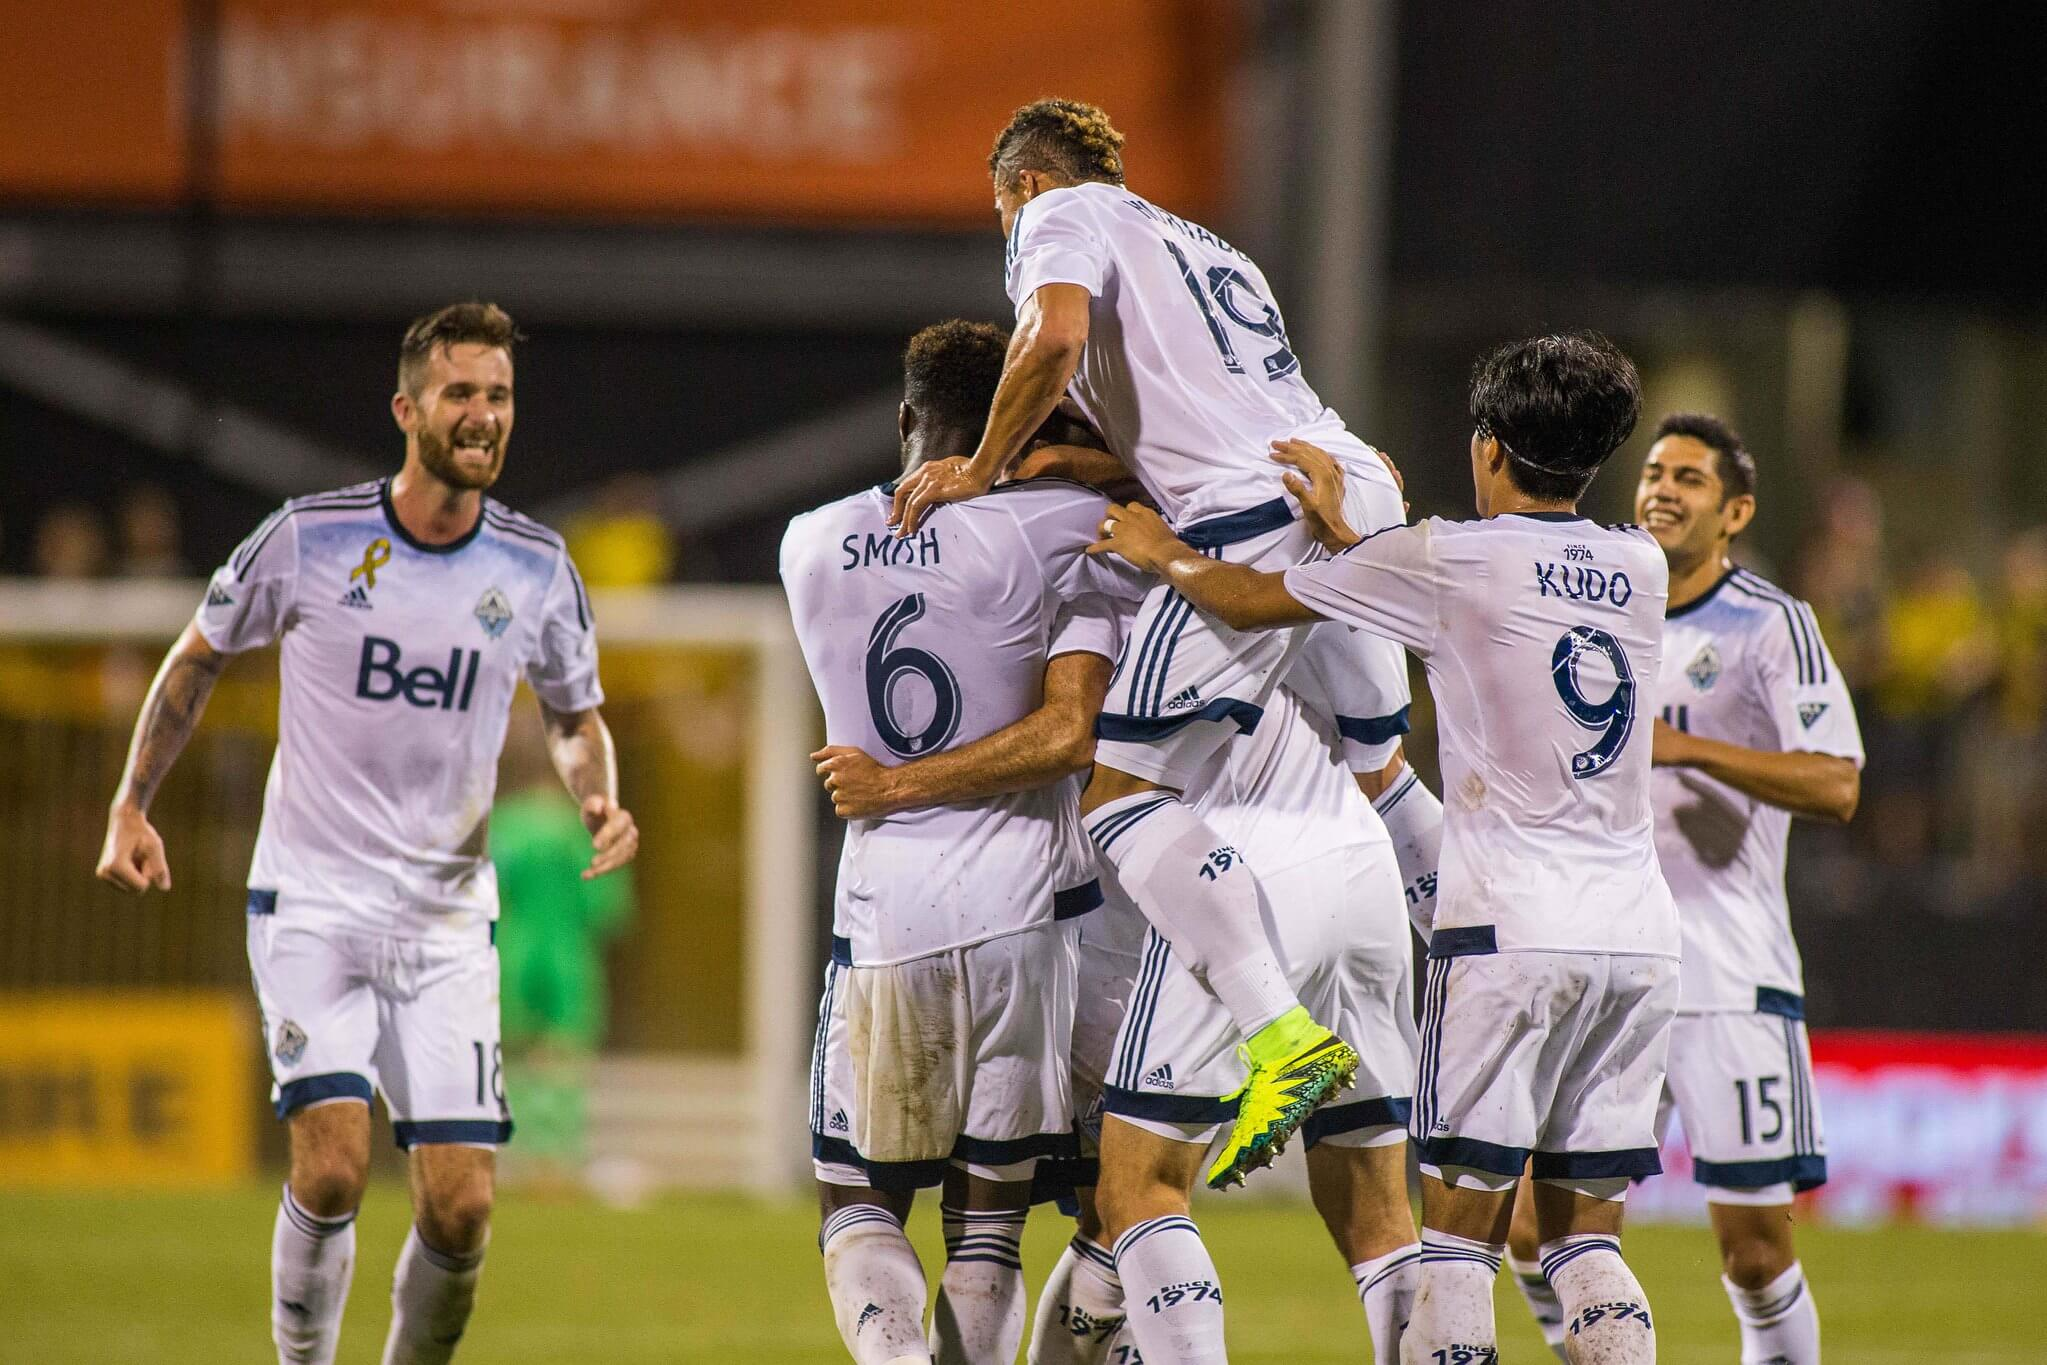 Vancouver Whitecaps soccer players